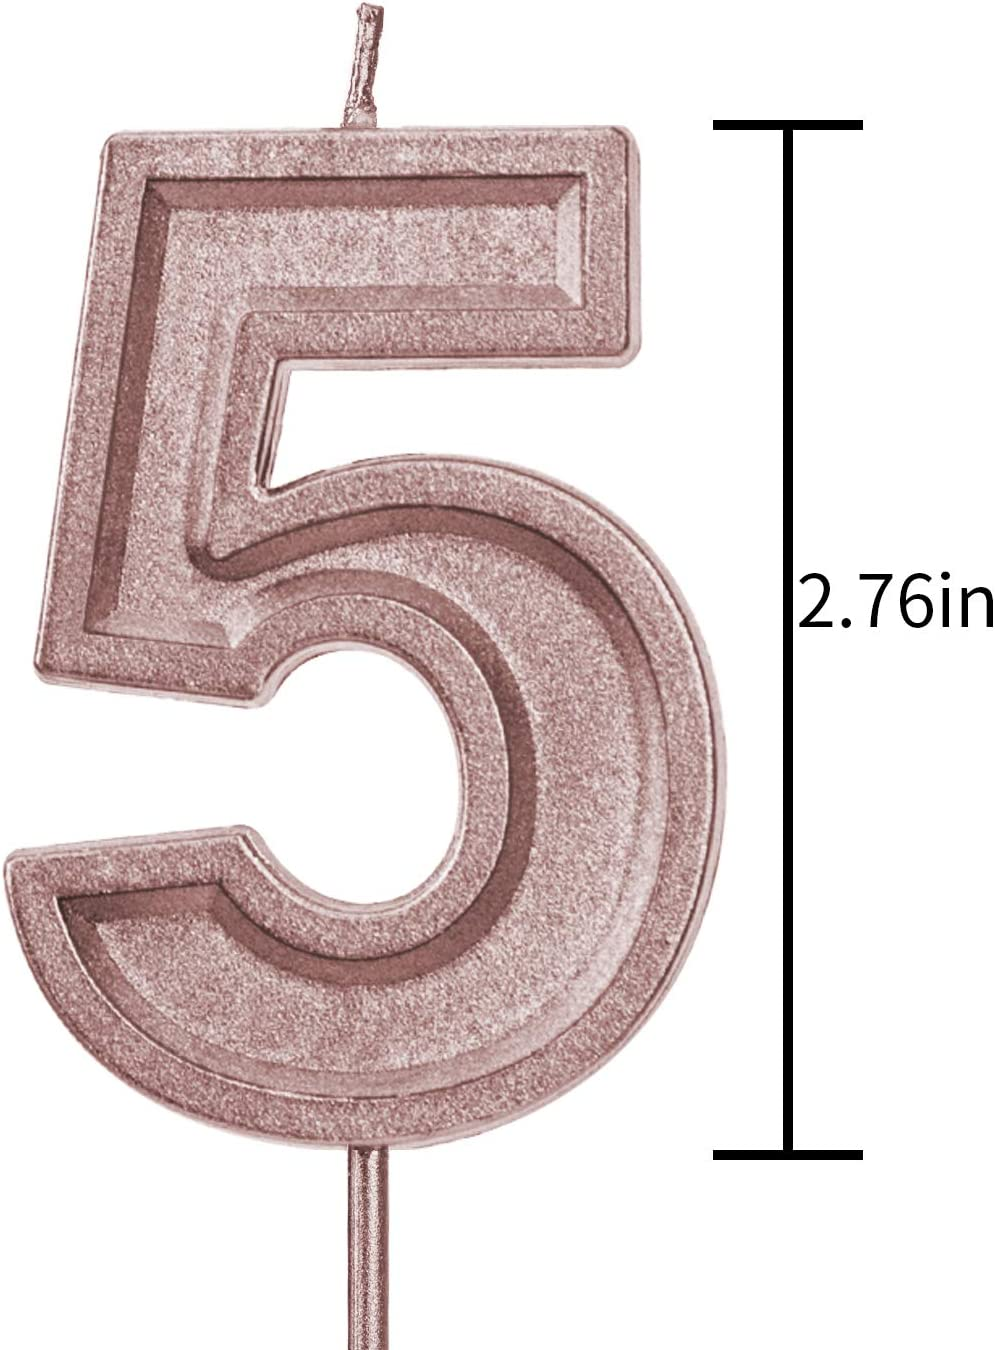 Number 8 LUTER 2.76 Inches Large Birthday Candles Gold Glitter Birthday Cake Candles Number Candles Cake Topper Decoration for Wedding Party Kids Adults